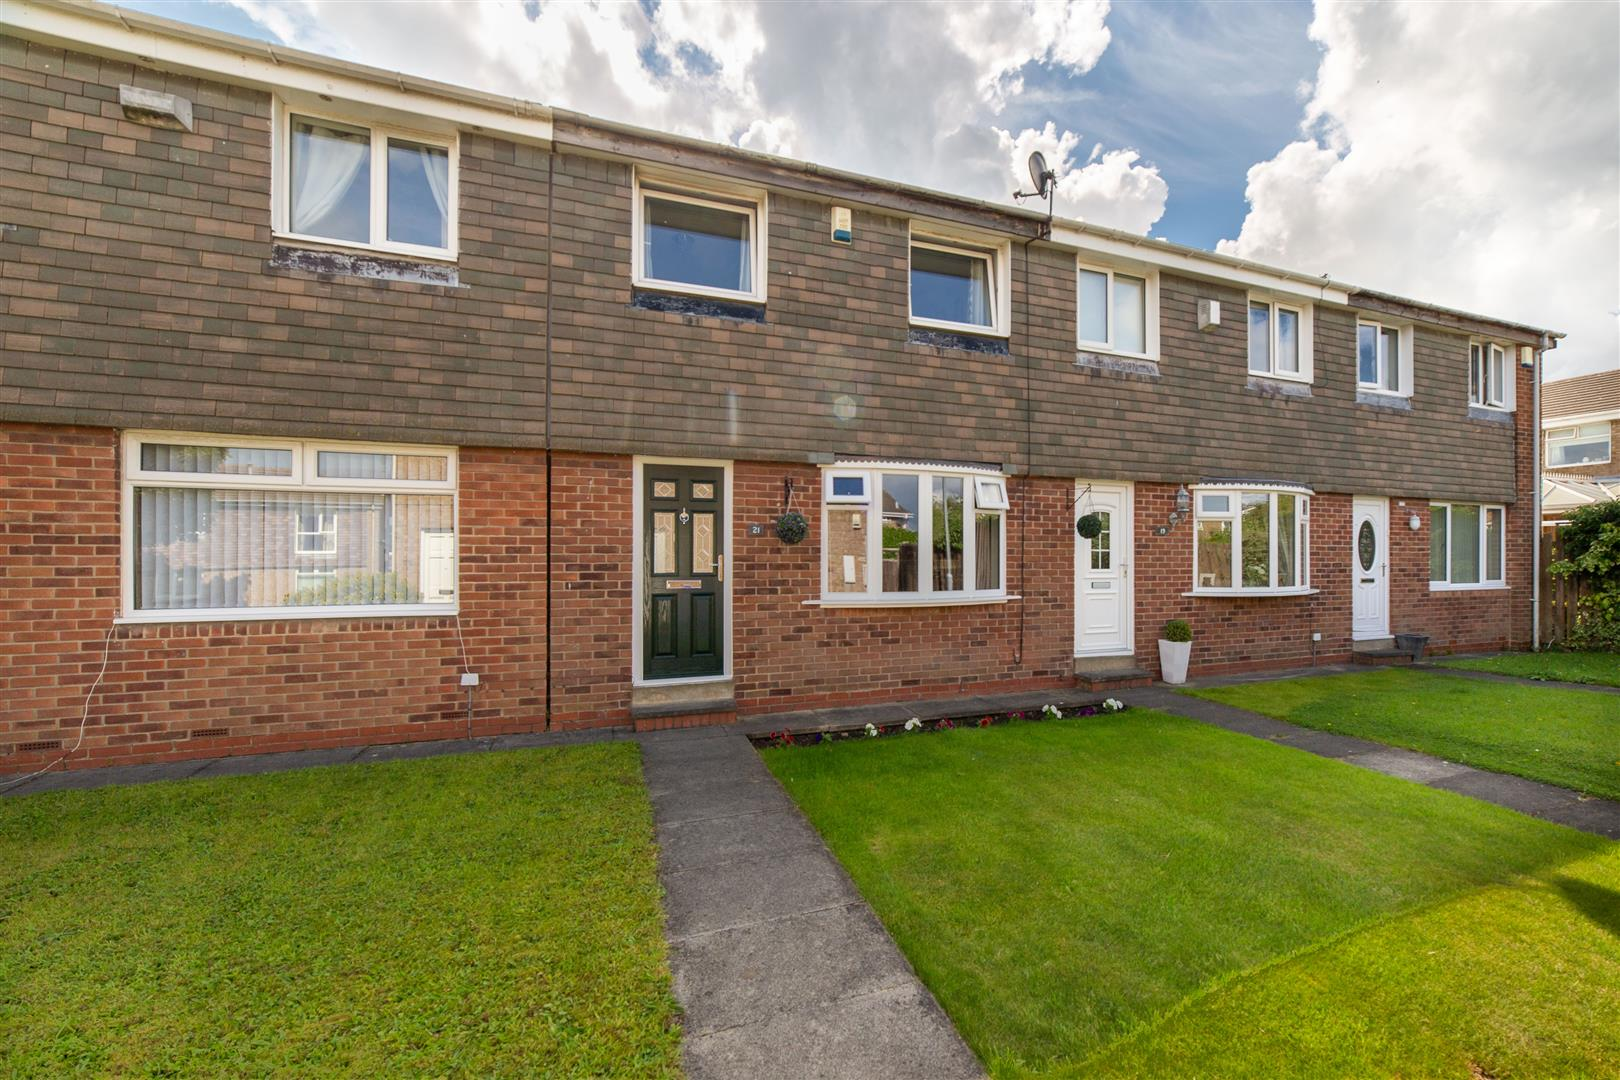 3 bed terraced house for sale in Oswestry Place, Cramlington, NE23